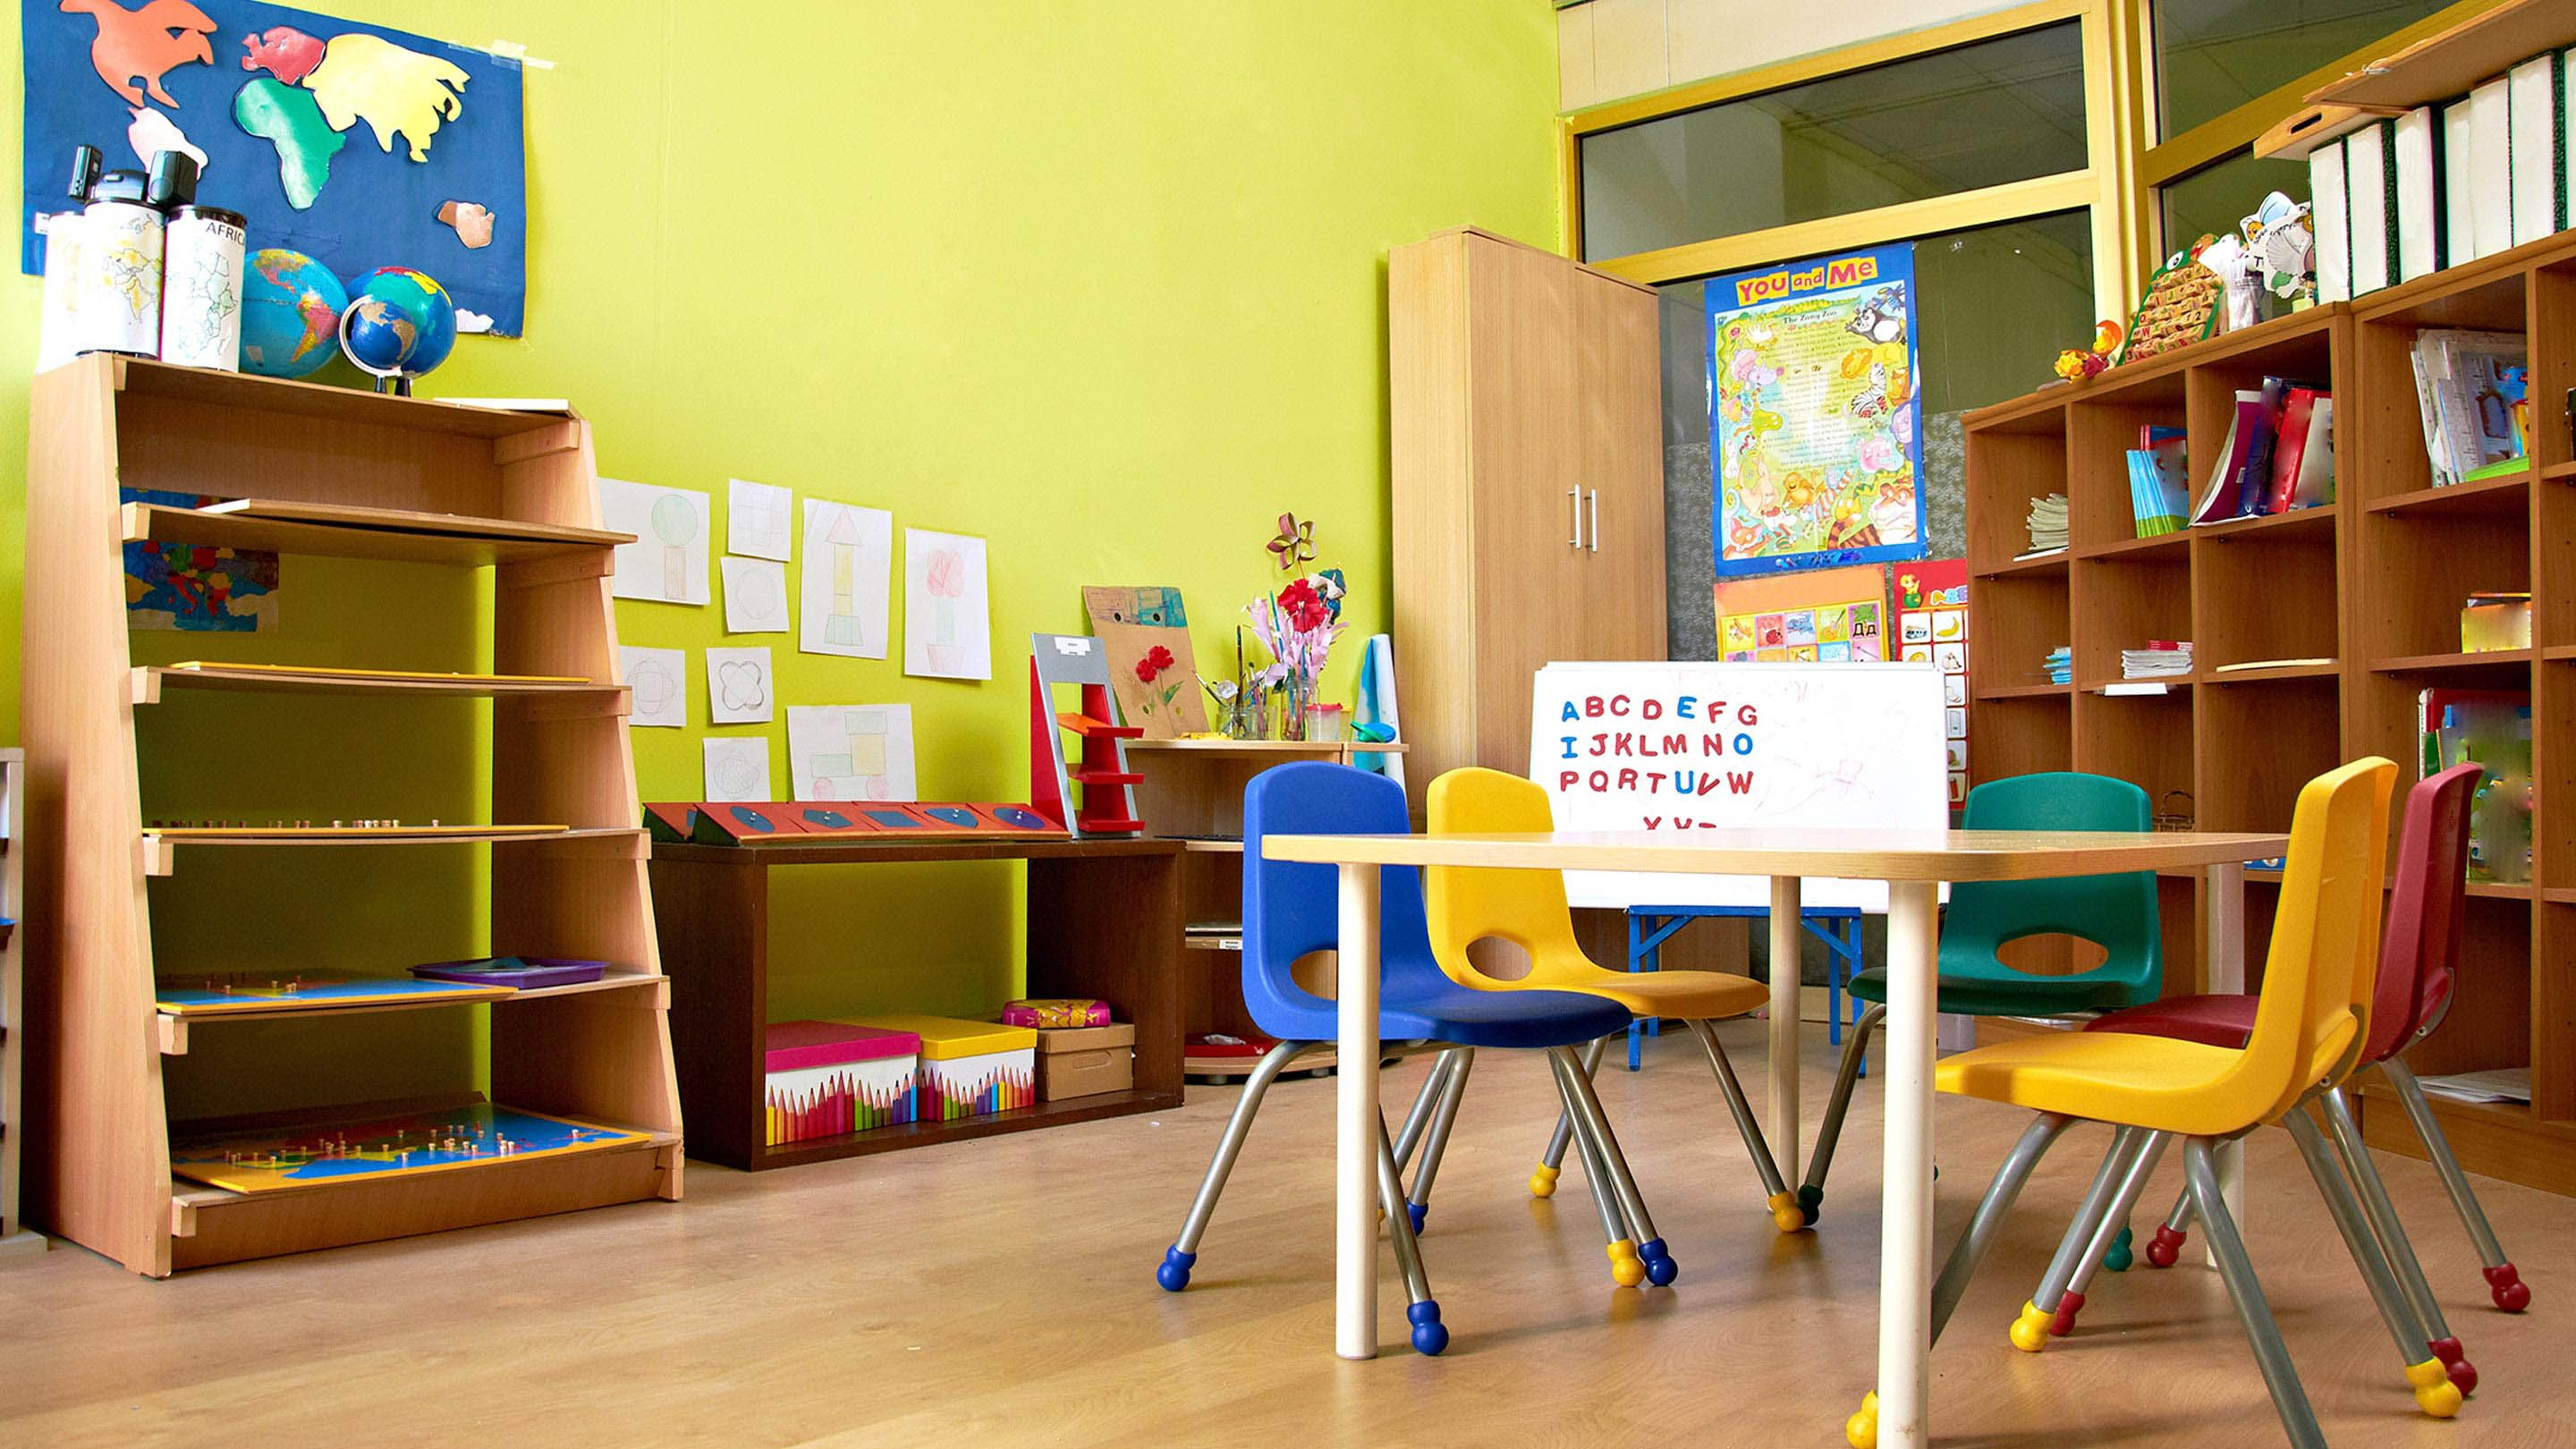 A non-cluttered classroom